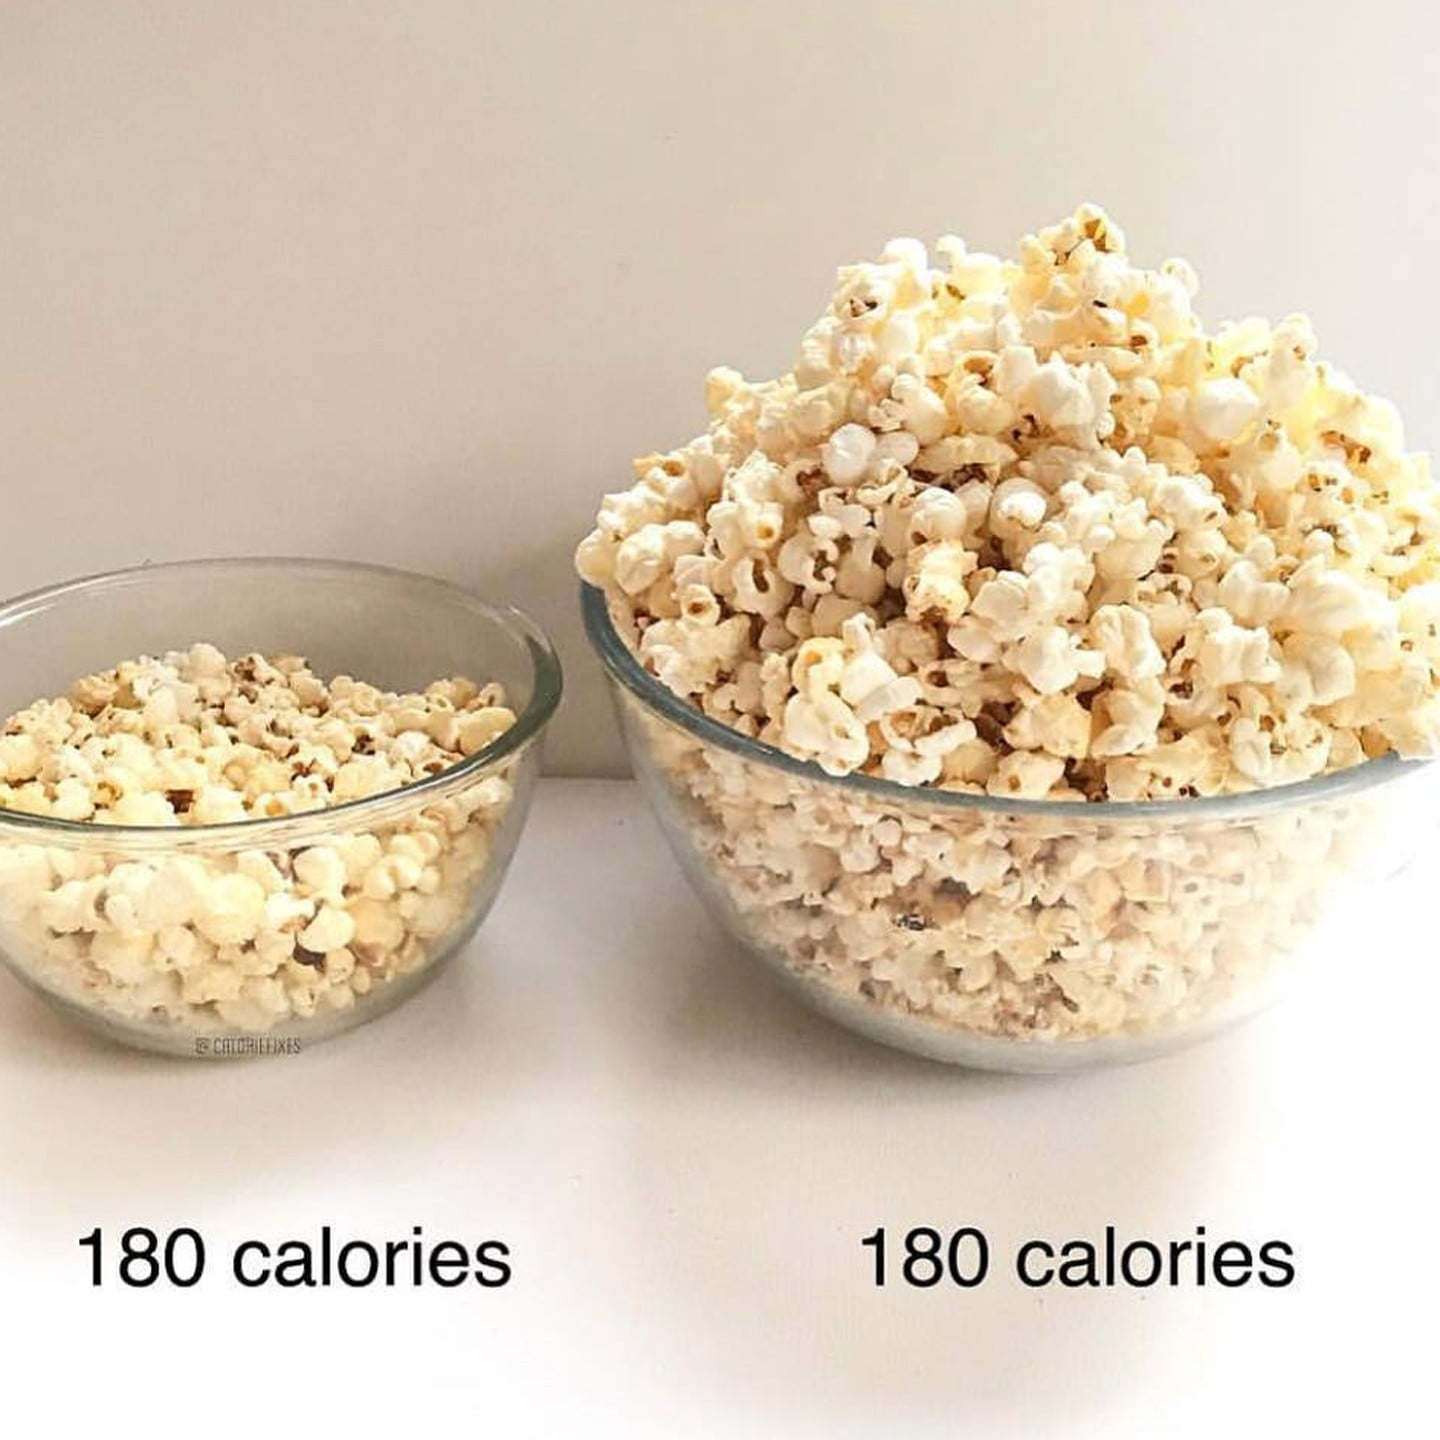 calories in homemade and microwave popcorn | popsugar fitness australia